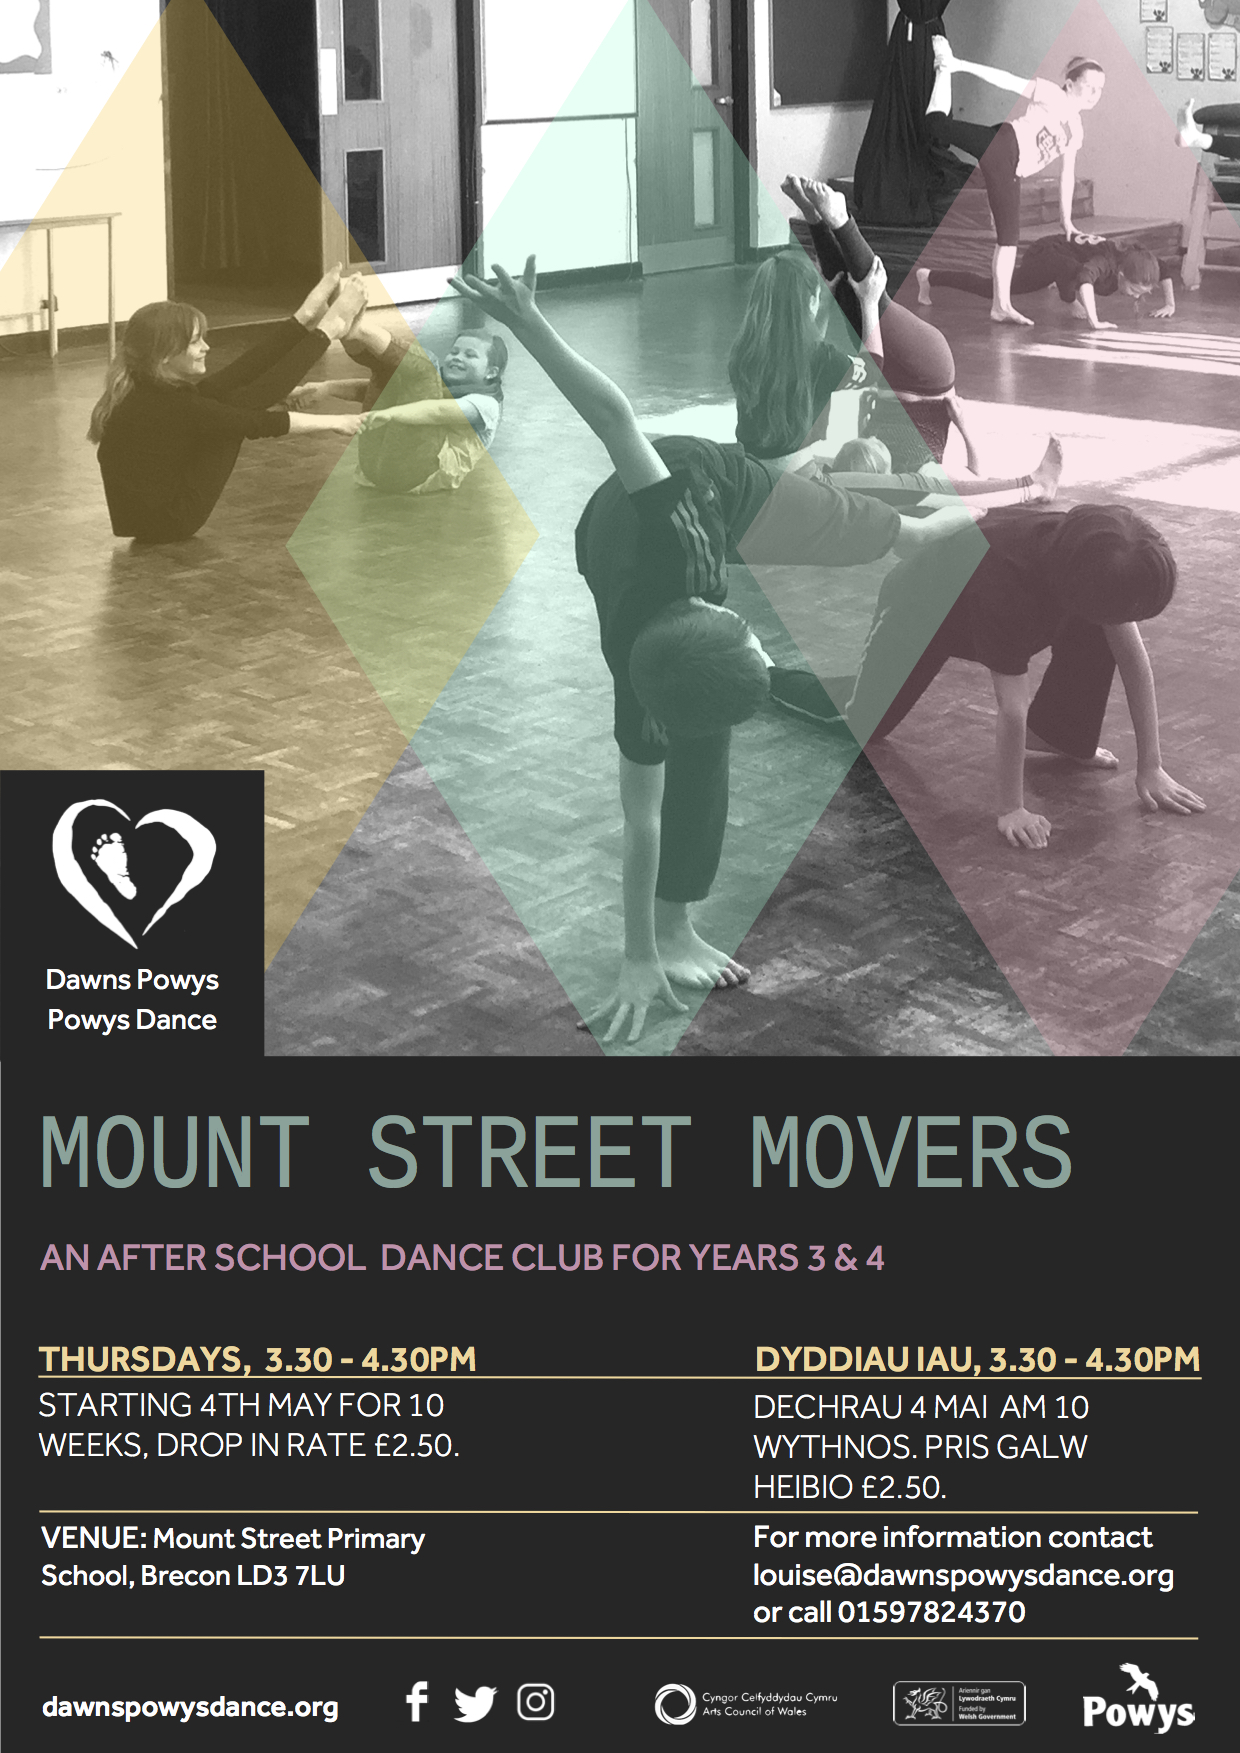 MOUNT STREET MOVERS.jpg